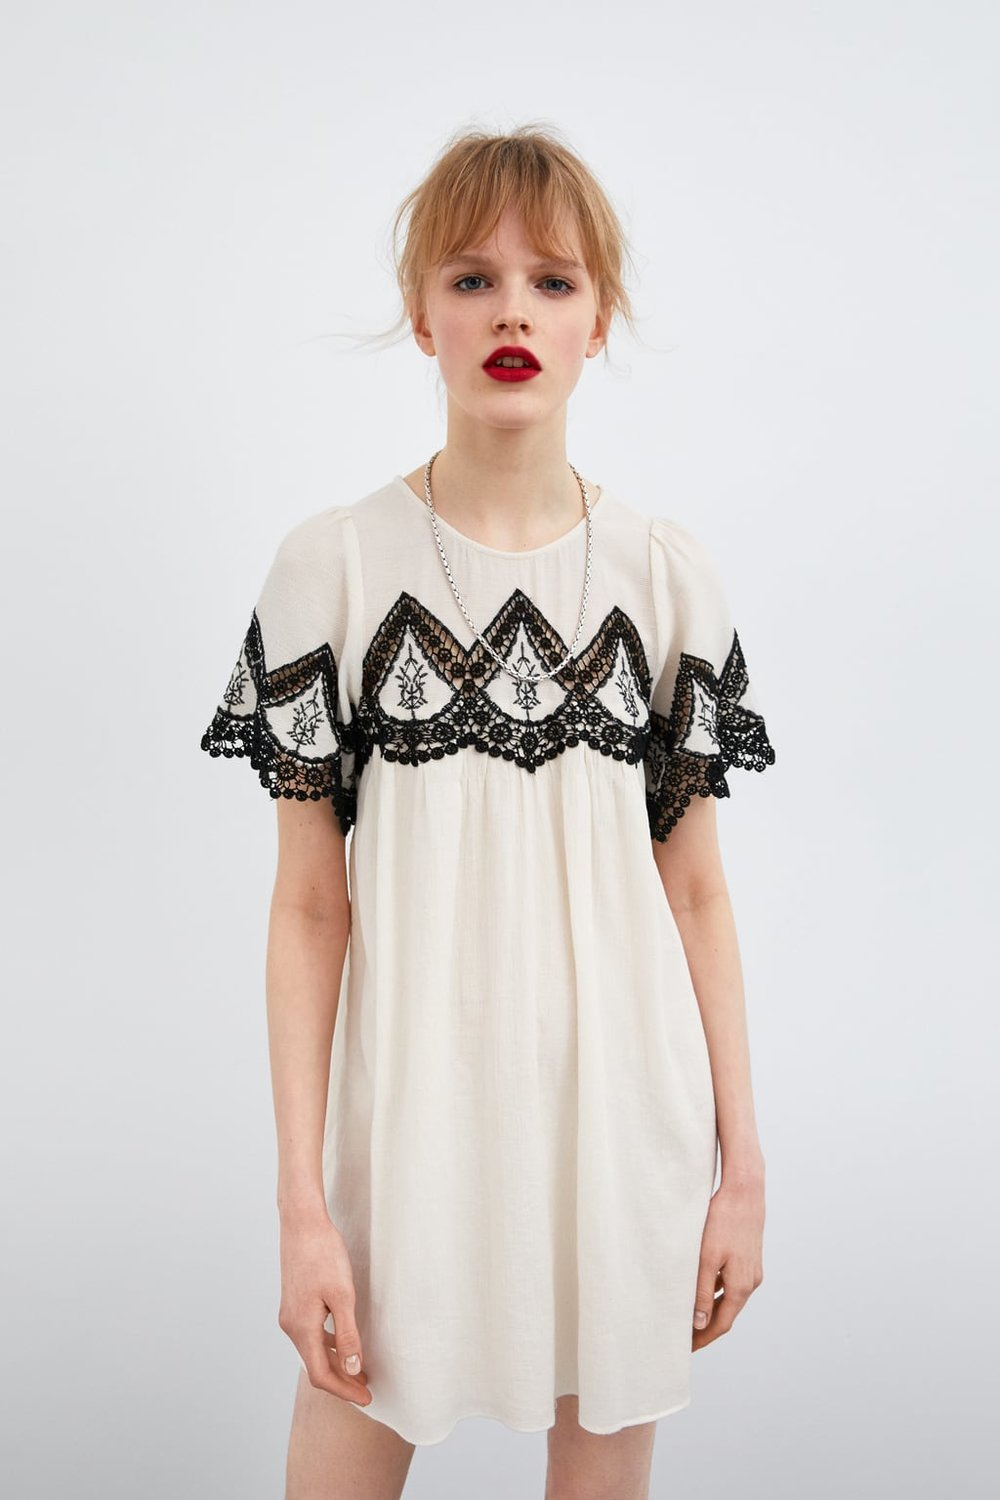 ZARA / DRESS WITH EMBROIDERY DETAIL $49.90 -